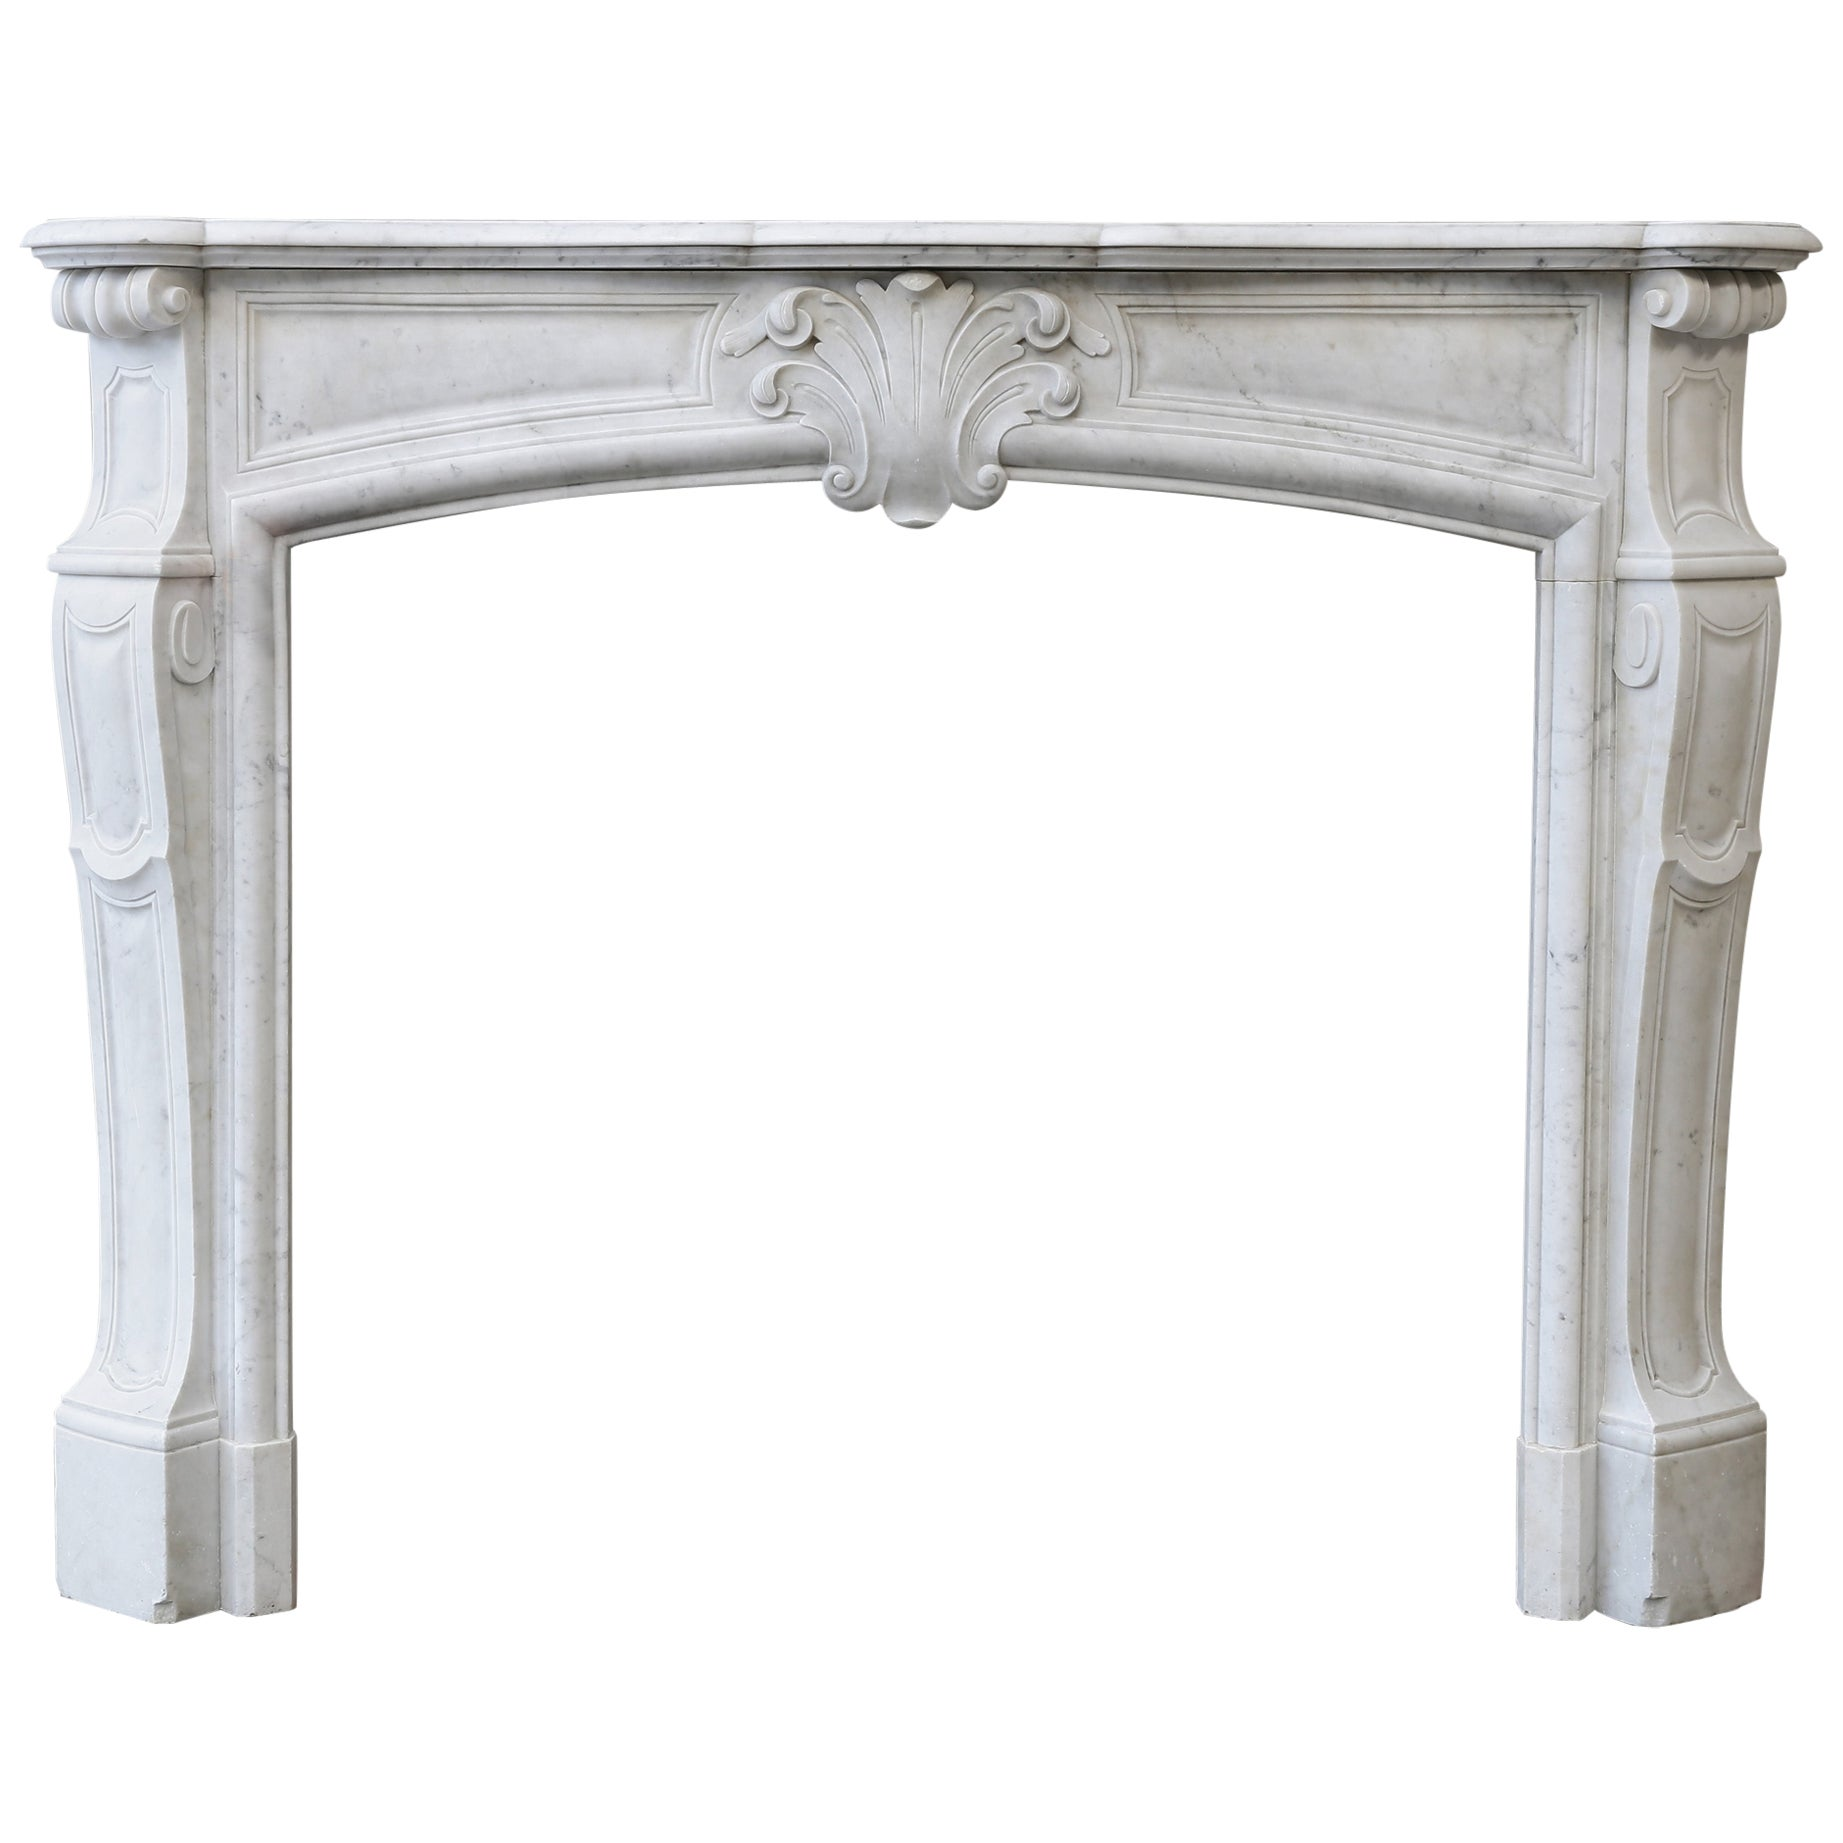 Louis XV Style Carrara Marble Mantel from the 19th Century